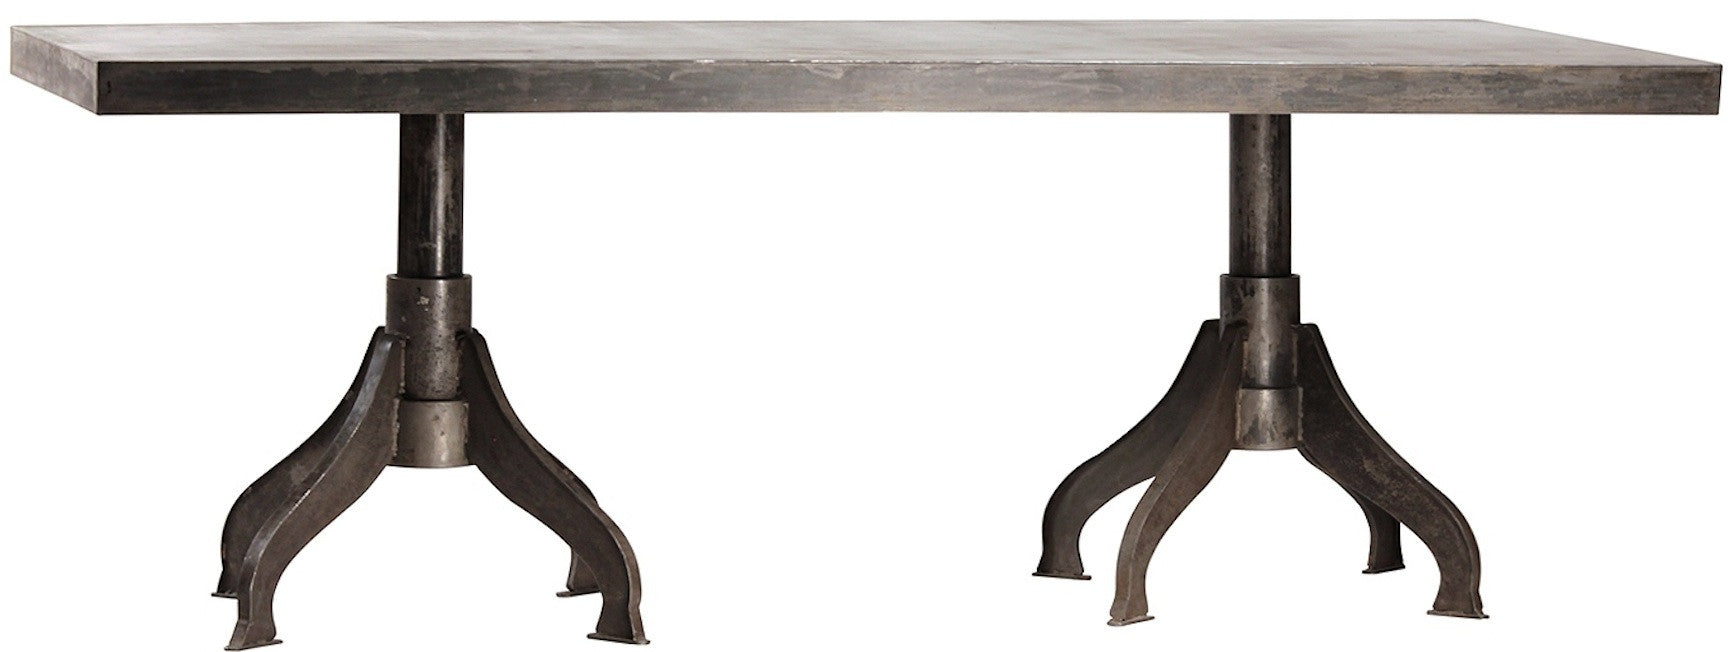 Industrial Metal Double Pedestal Dining Table ...